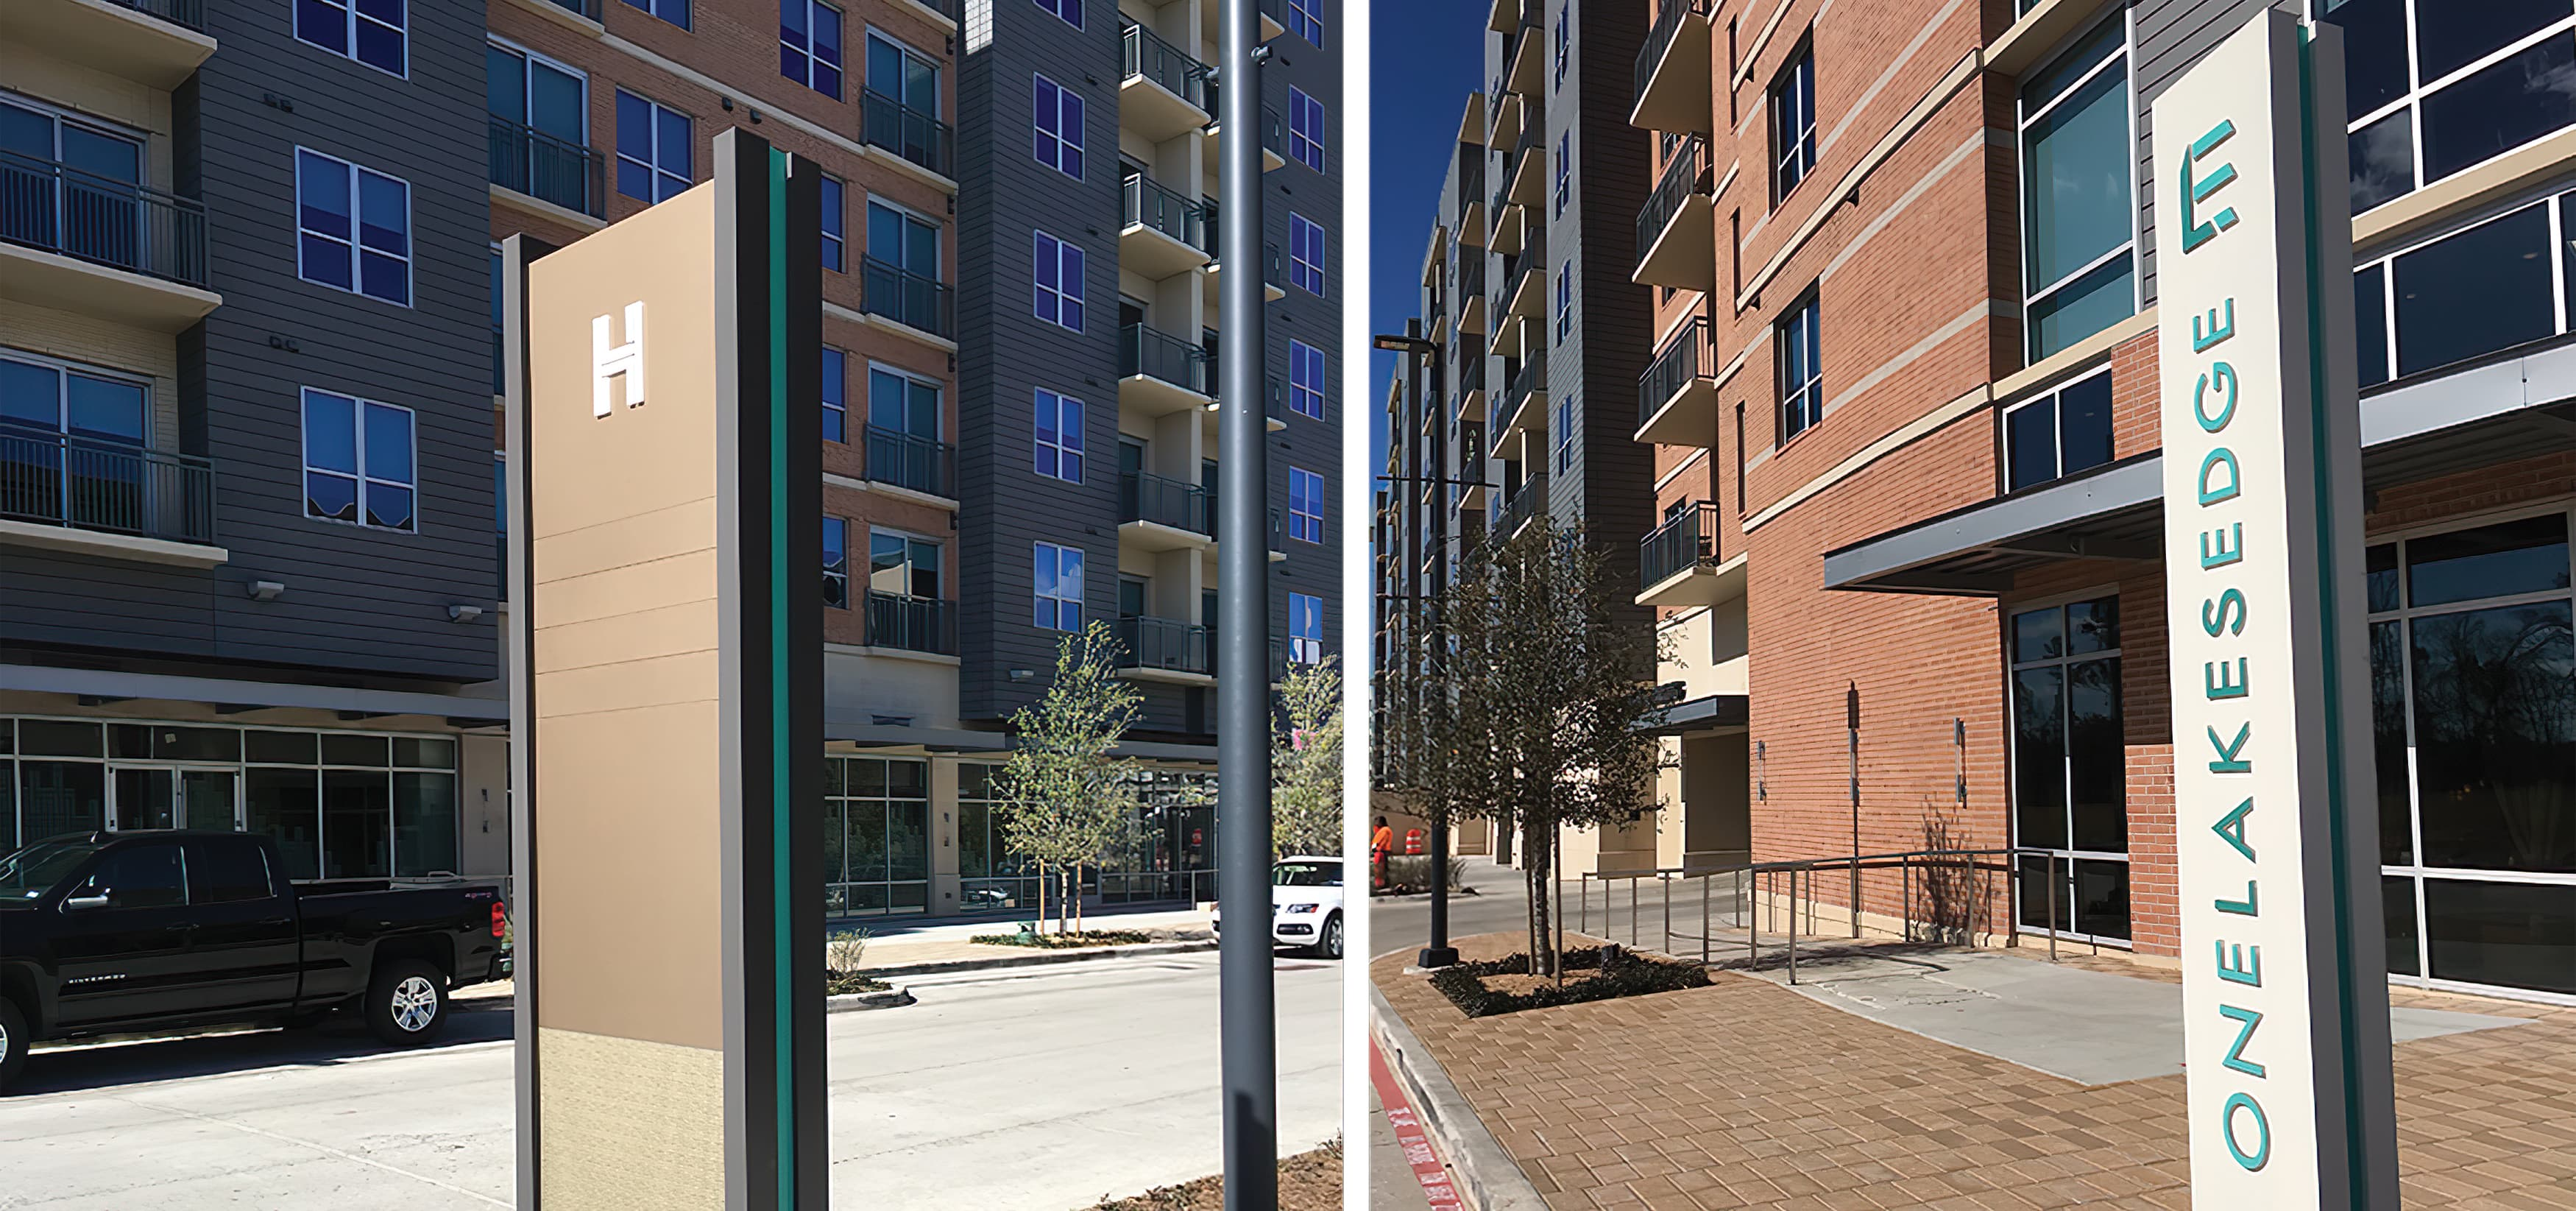 Hughes Landing, a mixed-use development in  The Woodlands, Texas. Project Identity Signage.